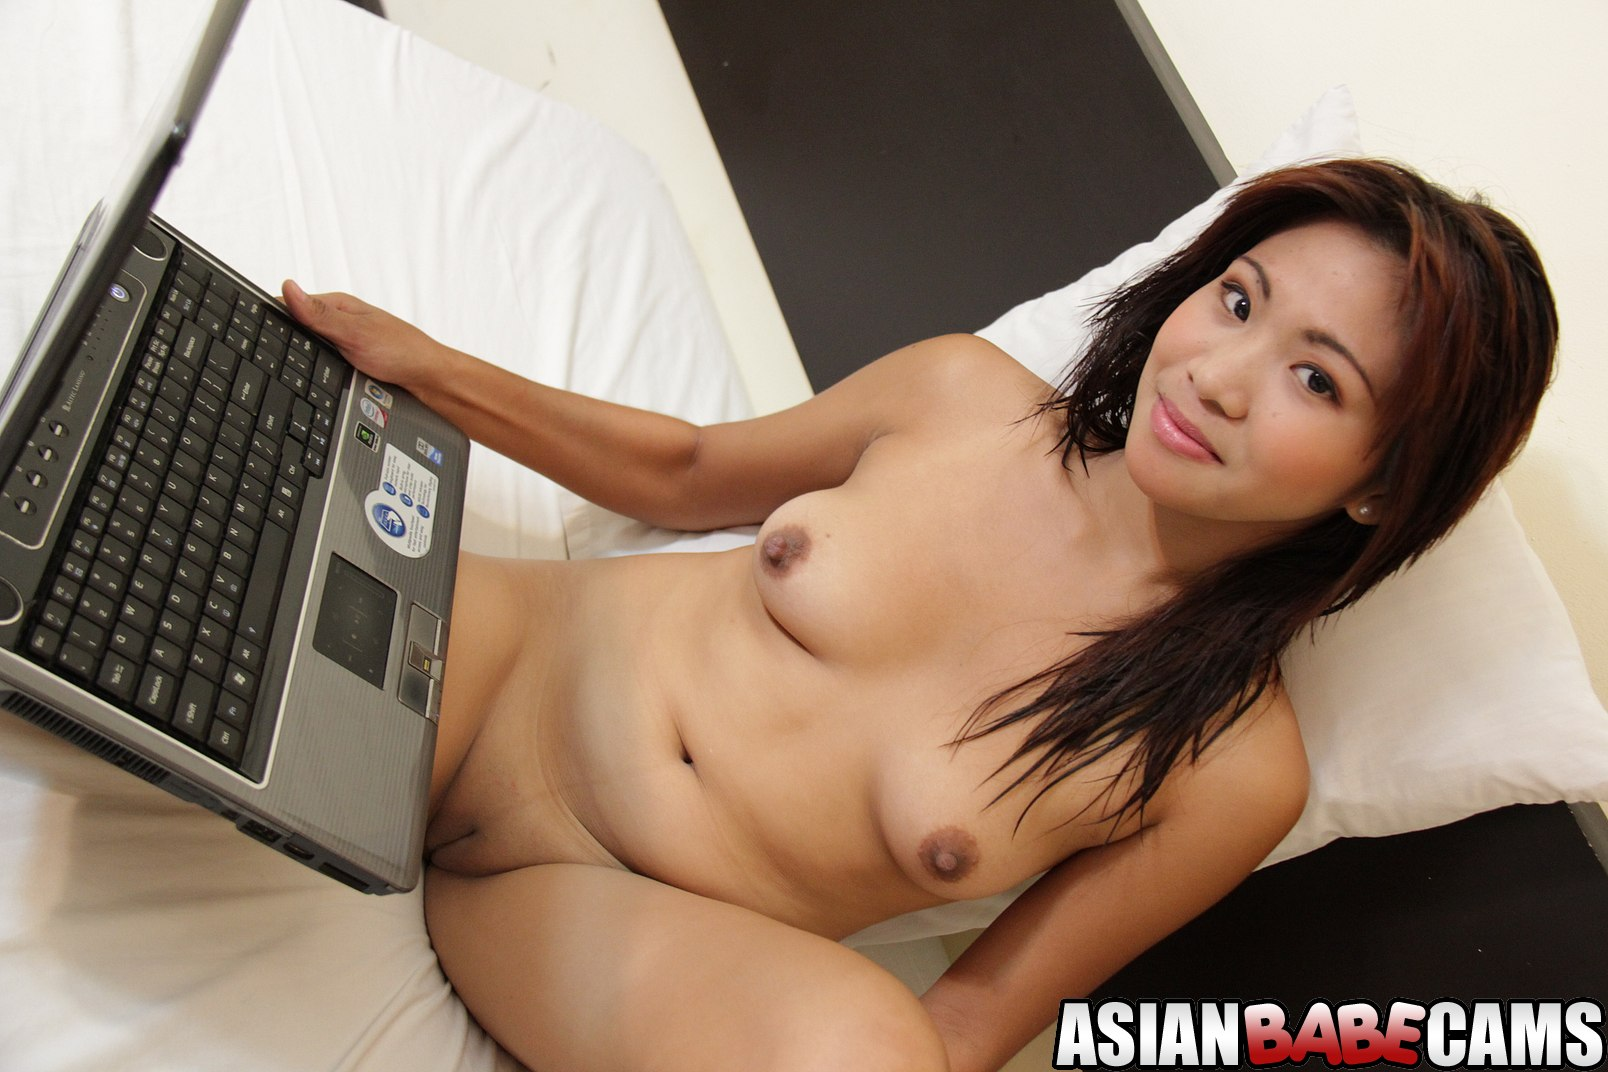 Asian babe cam model